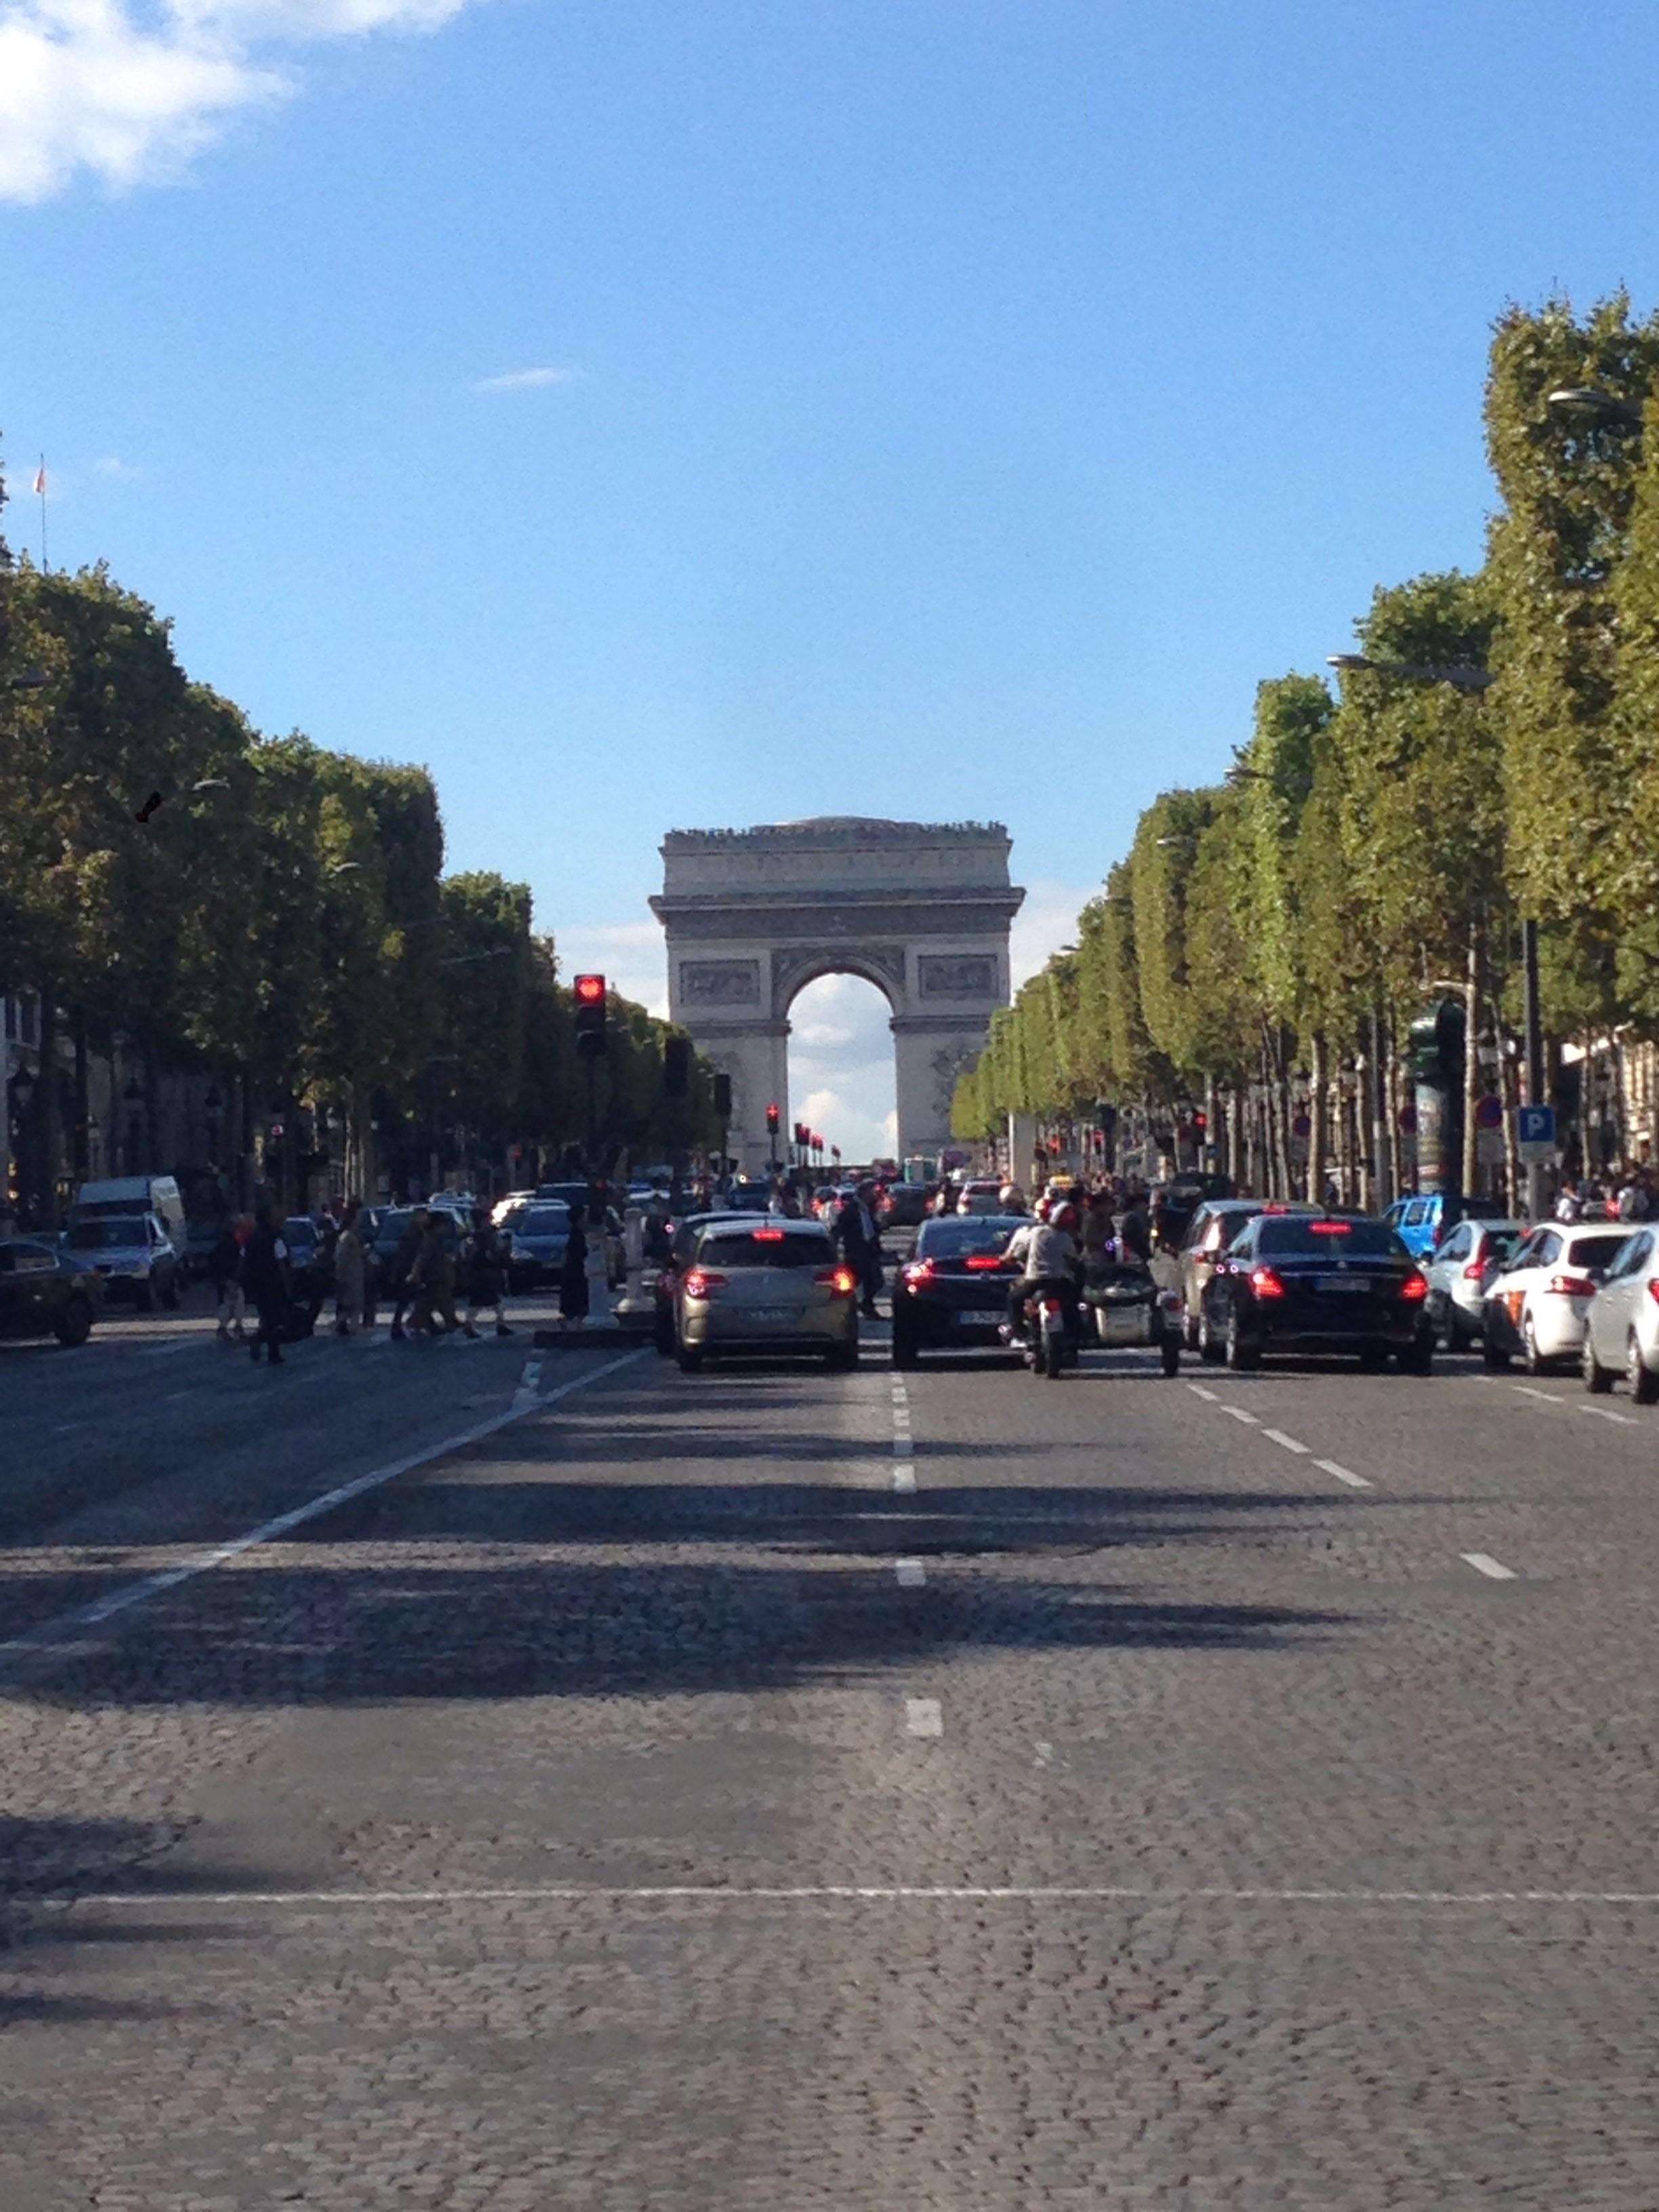 Arc de Triomphe from Champ Elysses